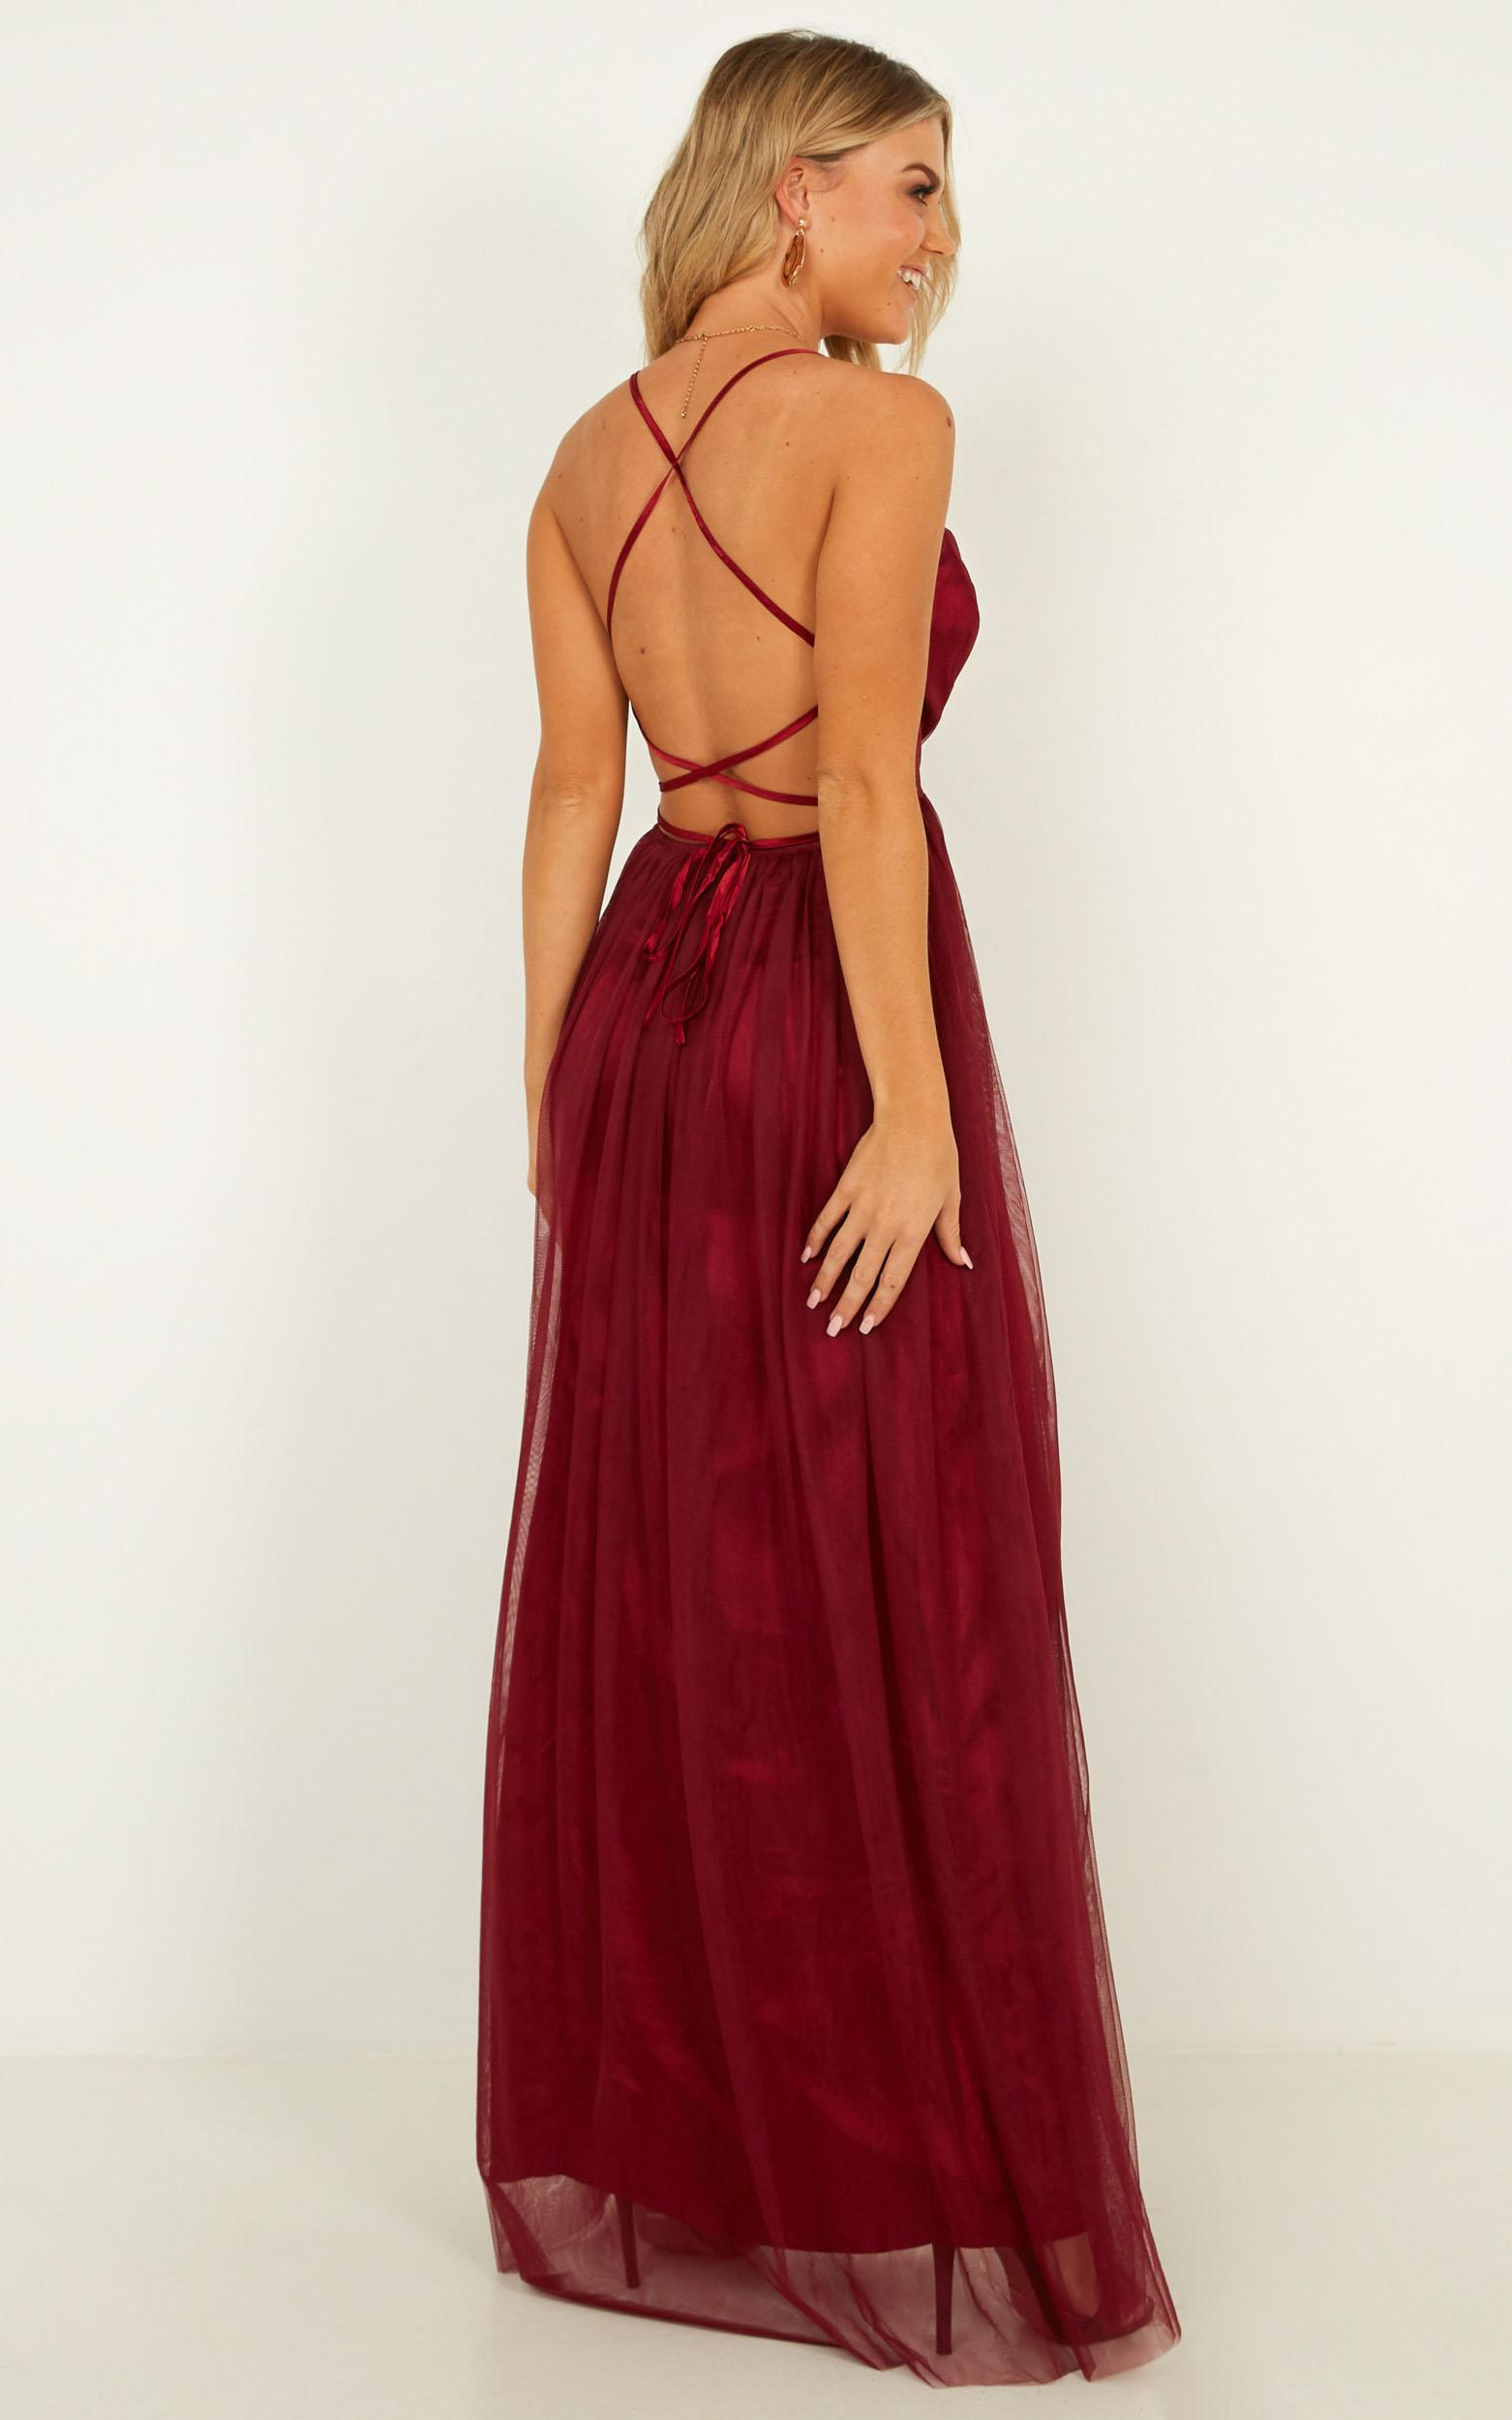 Make It Right Dress In wine - 20 (XXXXL), Wine, hi-res image number null